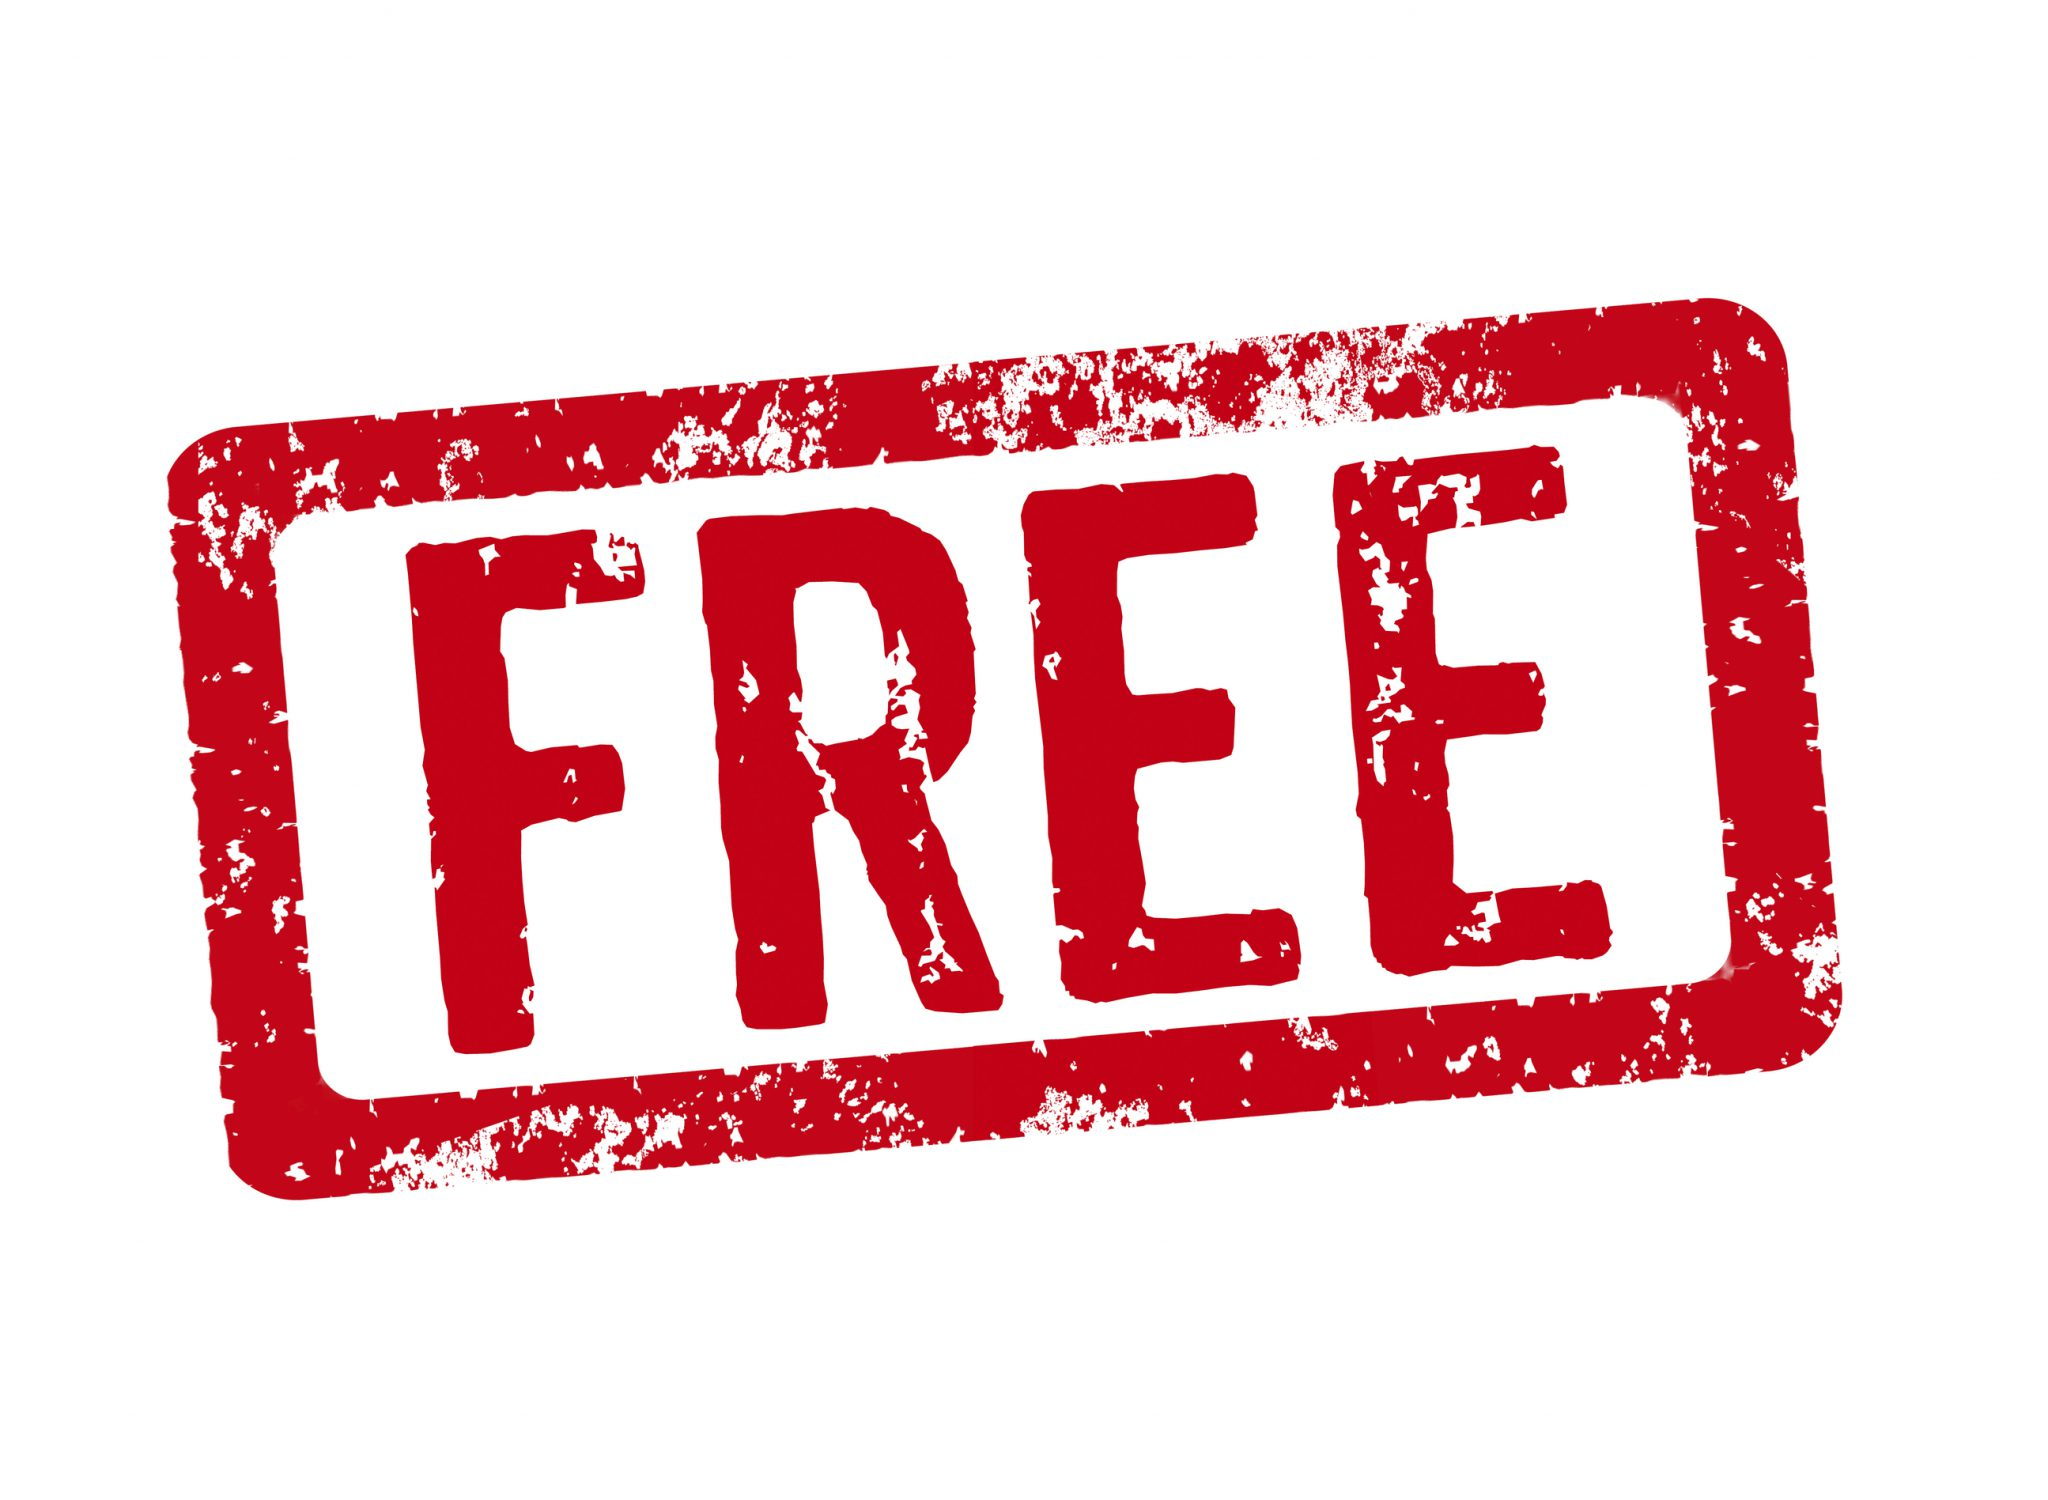 College for free? If you believe that, you have already been schooled